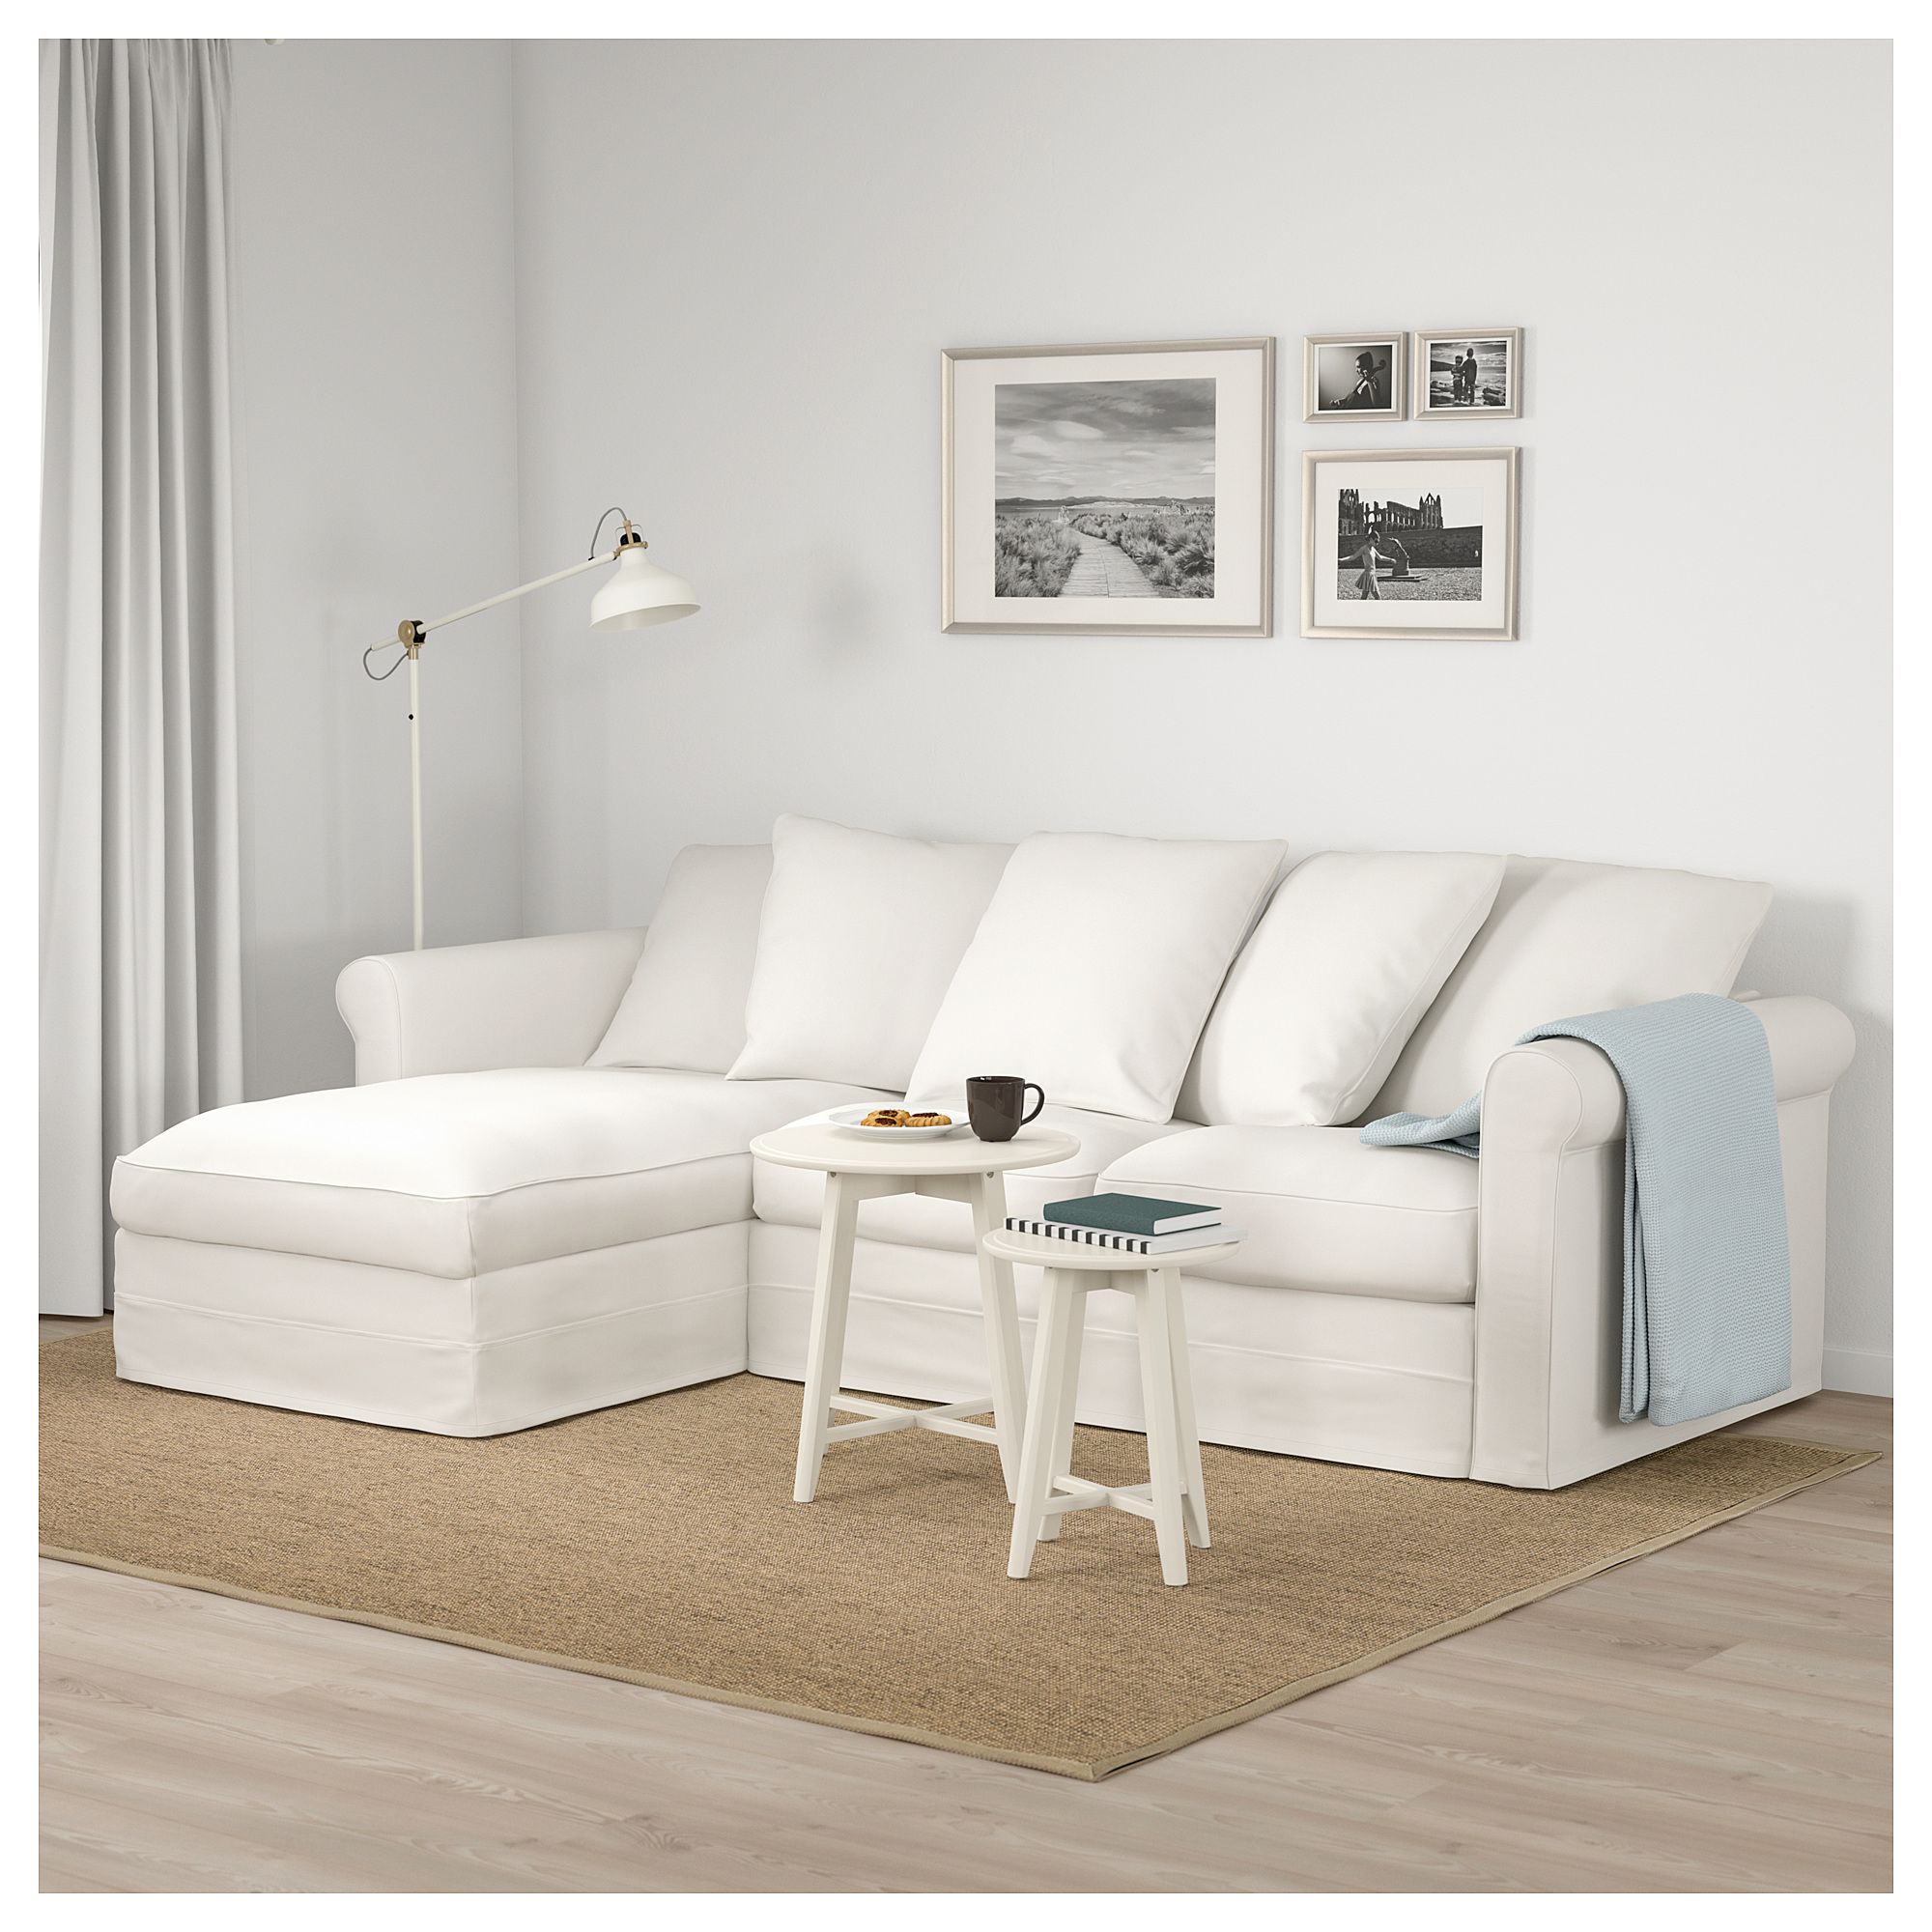 Furniture And Home Furnishings Modern White Living Room